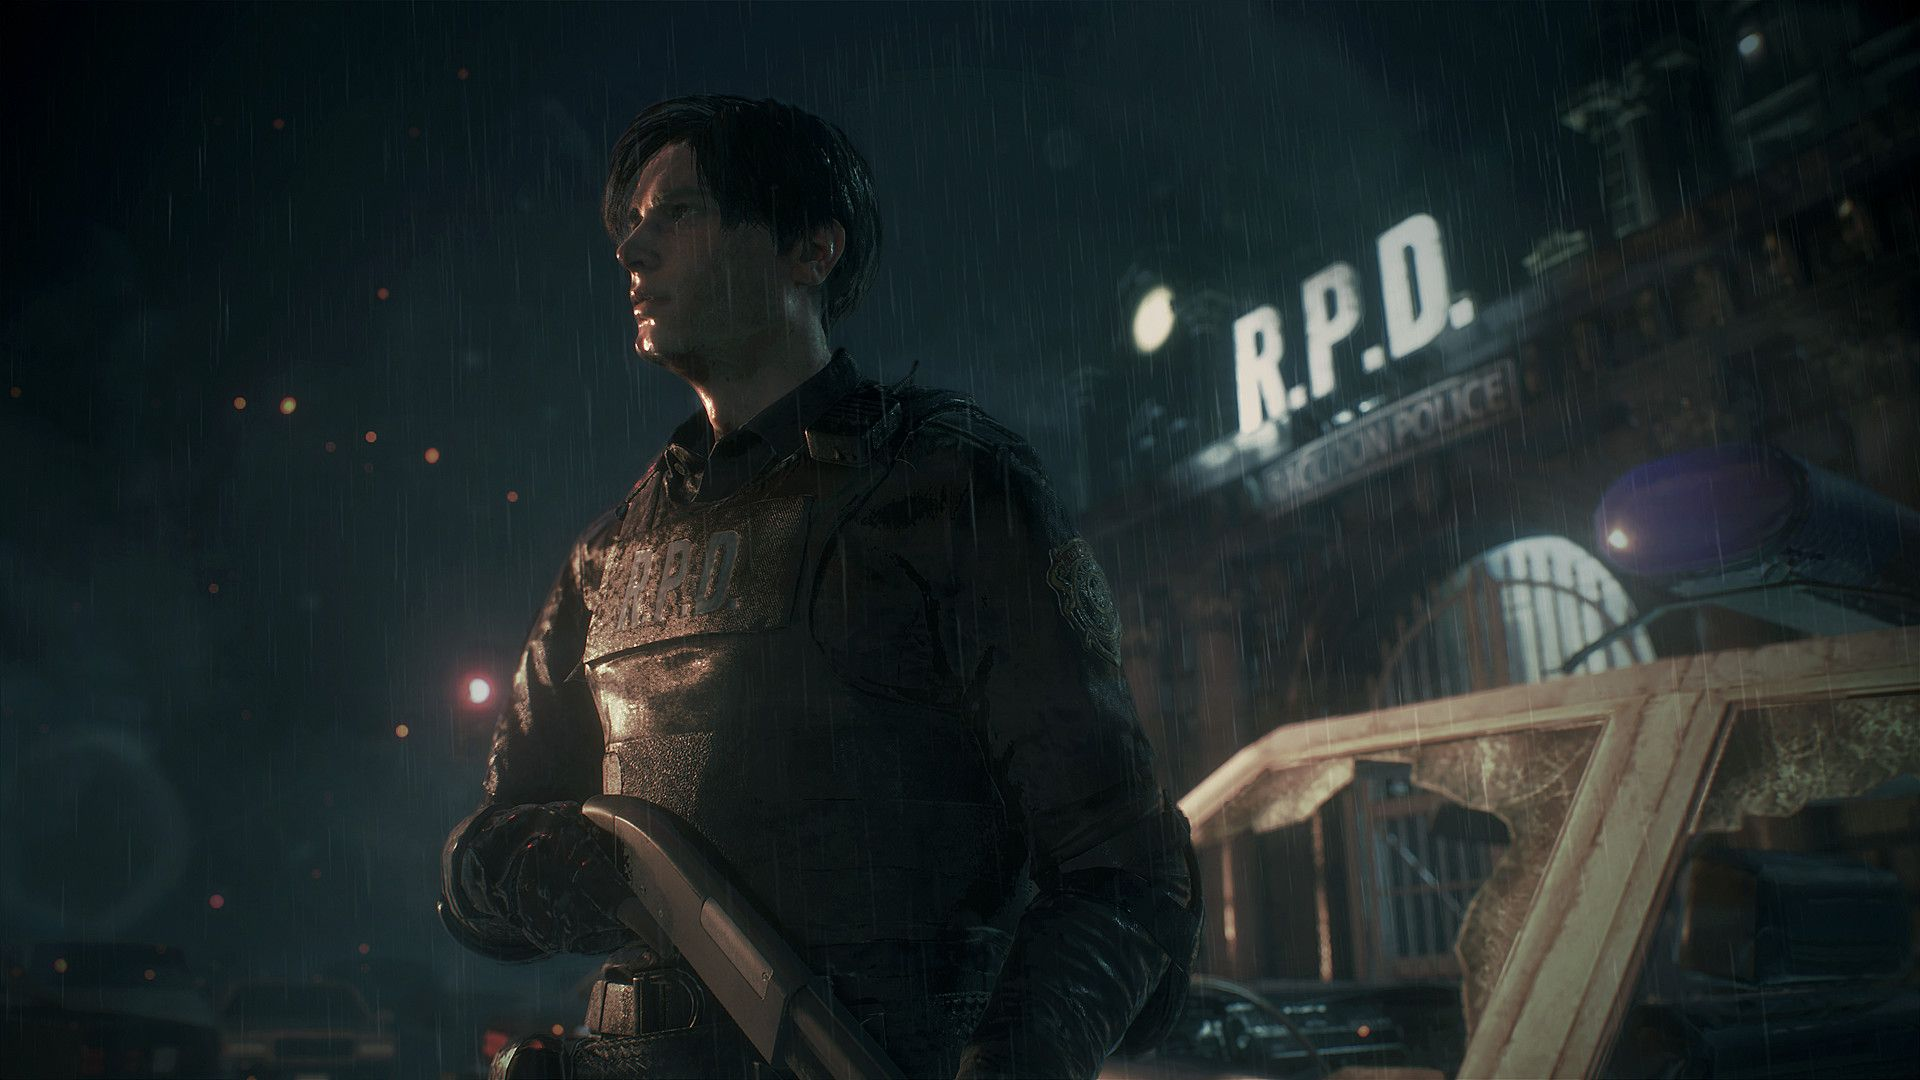 Feb 5 Resident Evil 2 mod lets you play in first-person mode